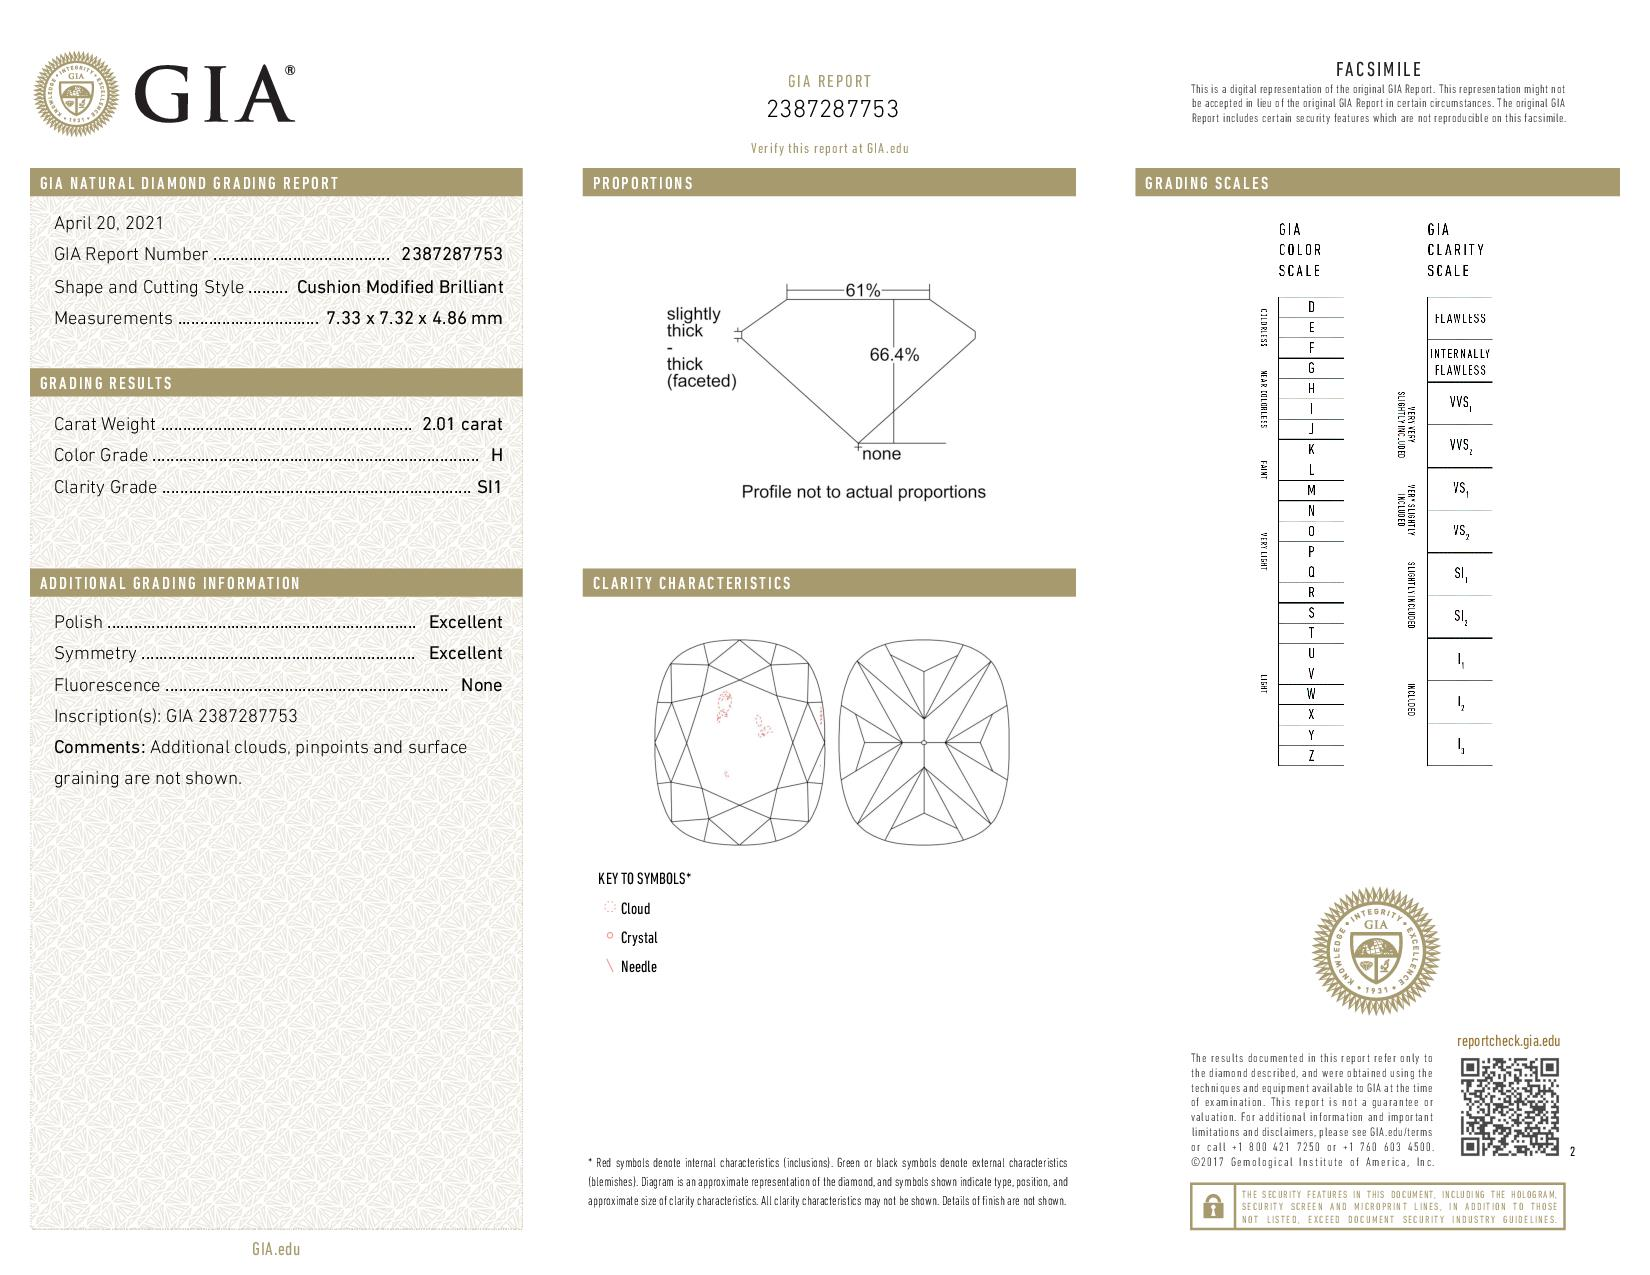 This is a 2.01 carat cushion shape, H color, SI1 clarity natural diamond accompanied by a GIA grading report.